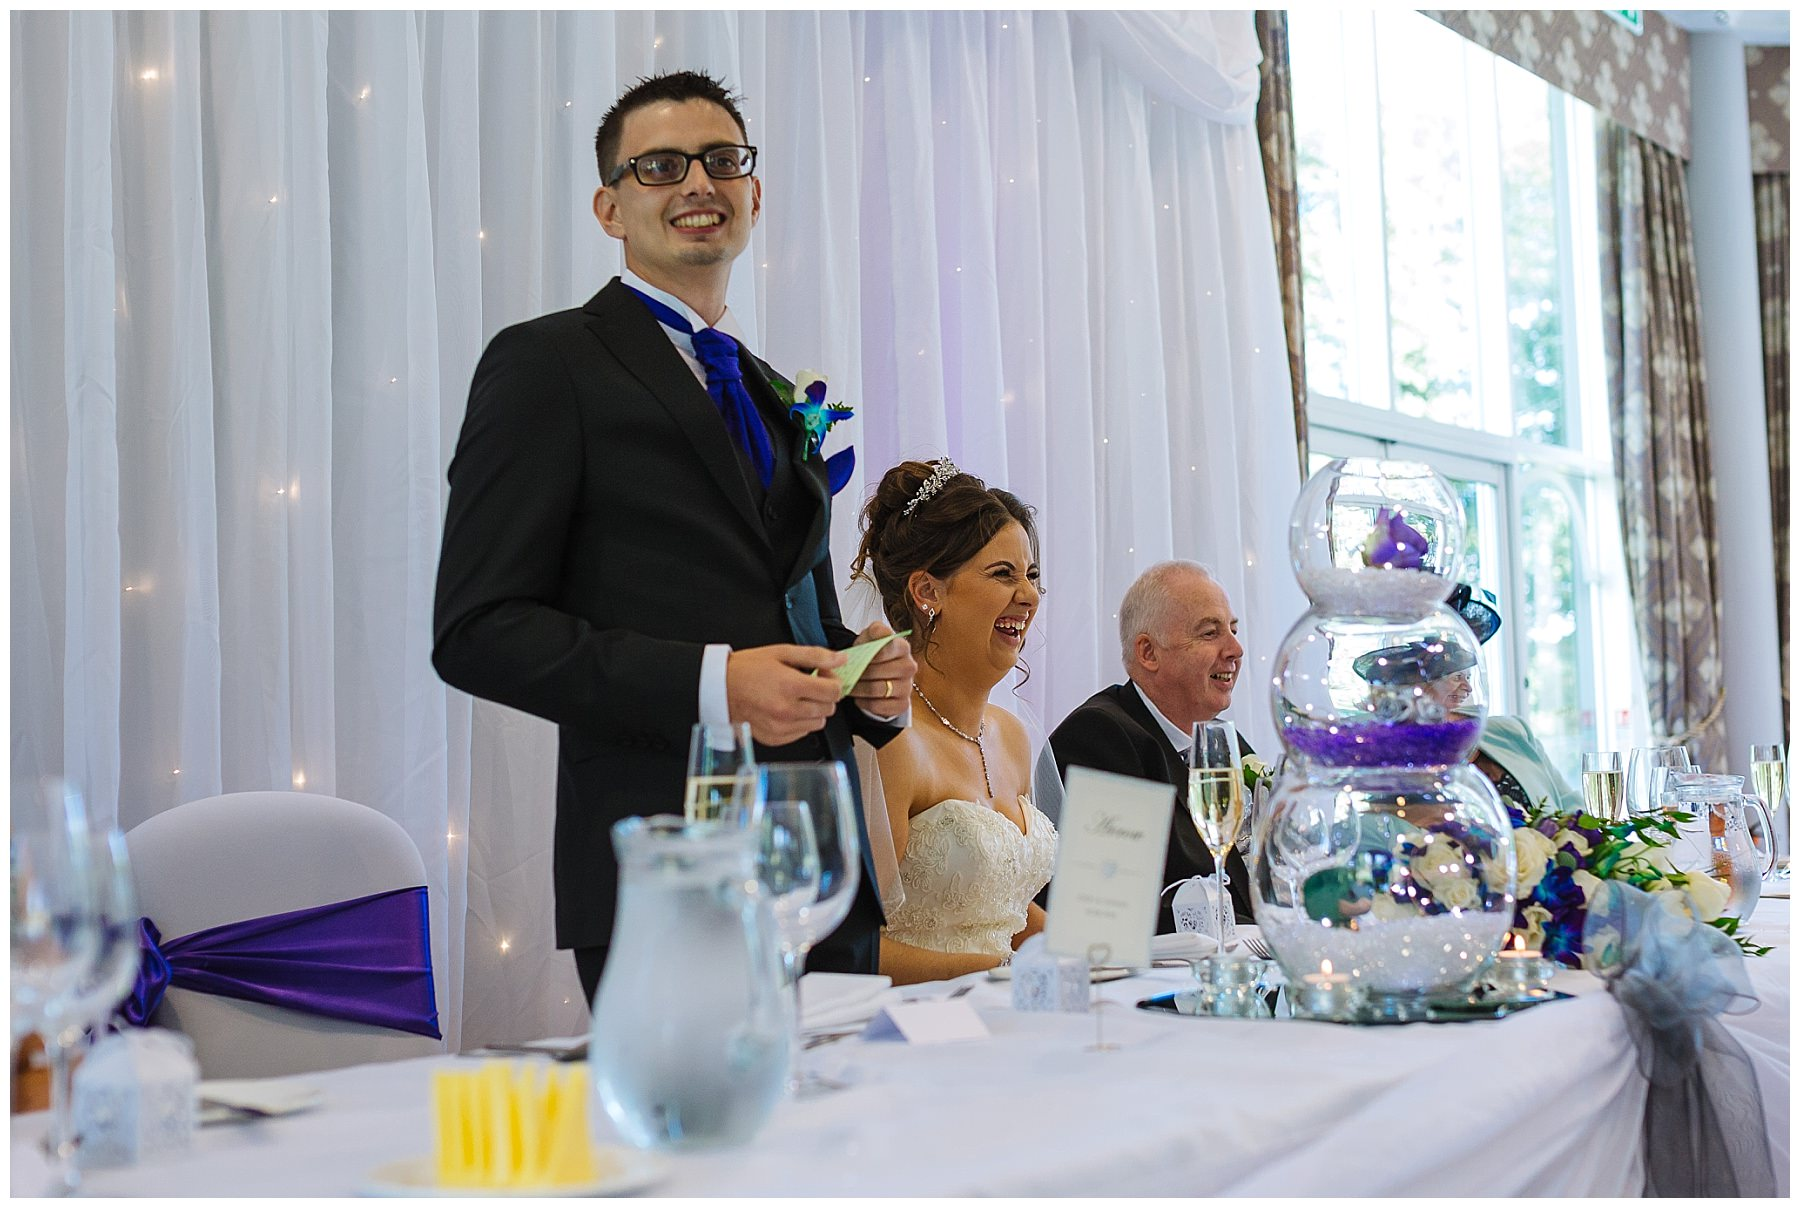 groom address guests during wedding speech